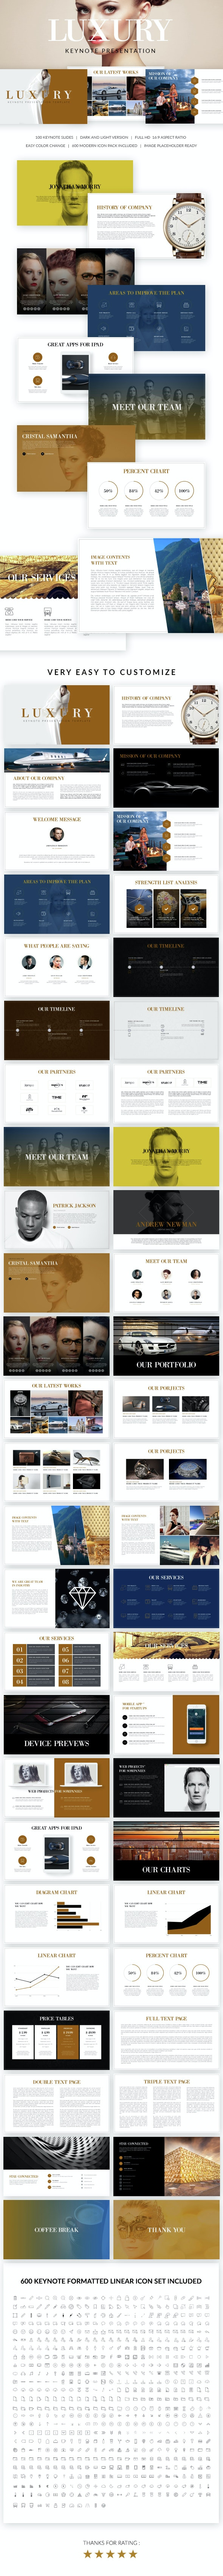 Luxury Keynote Presentation Template - Keynote Templates Presentation Templates